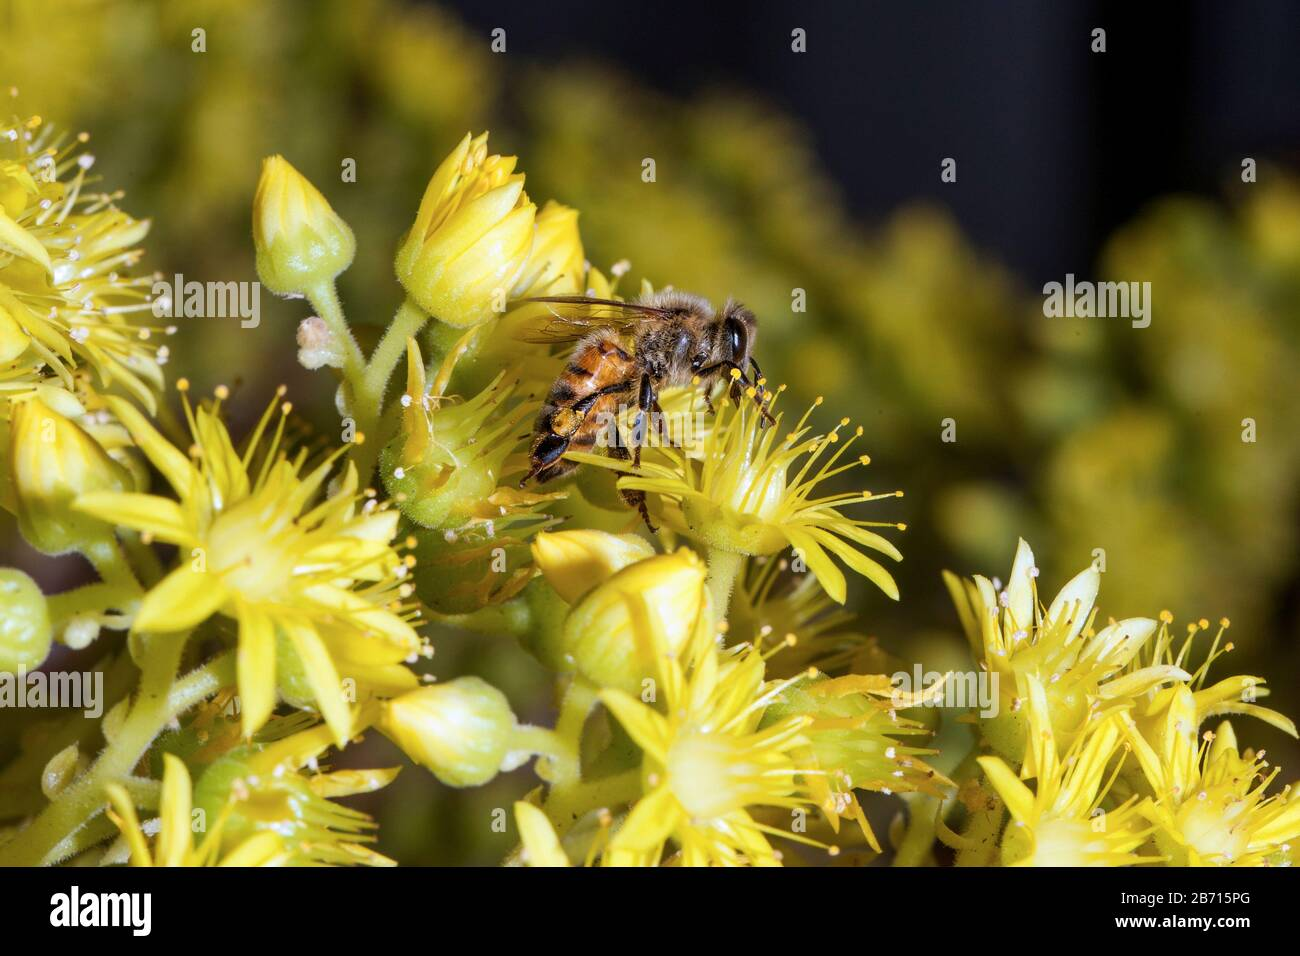 Honey bumblebee collecting pollen on yellow agave flower macro close-up Stock Photo